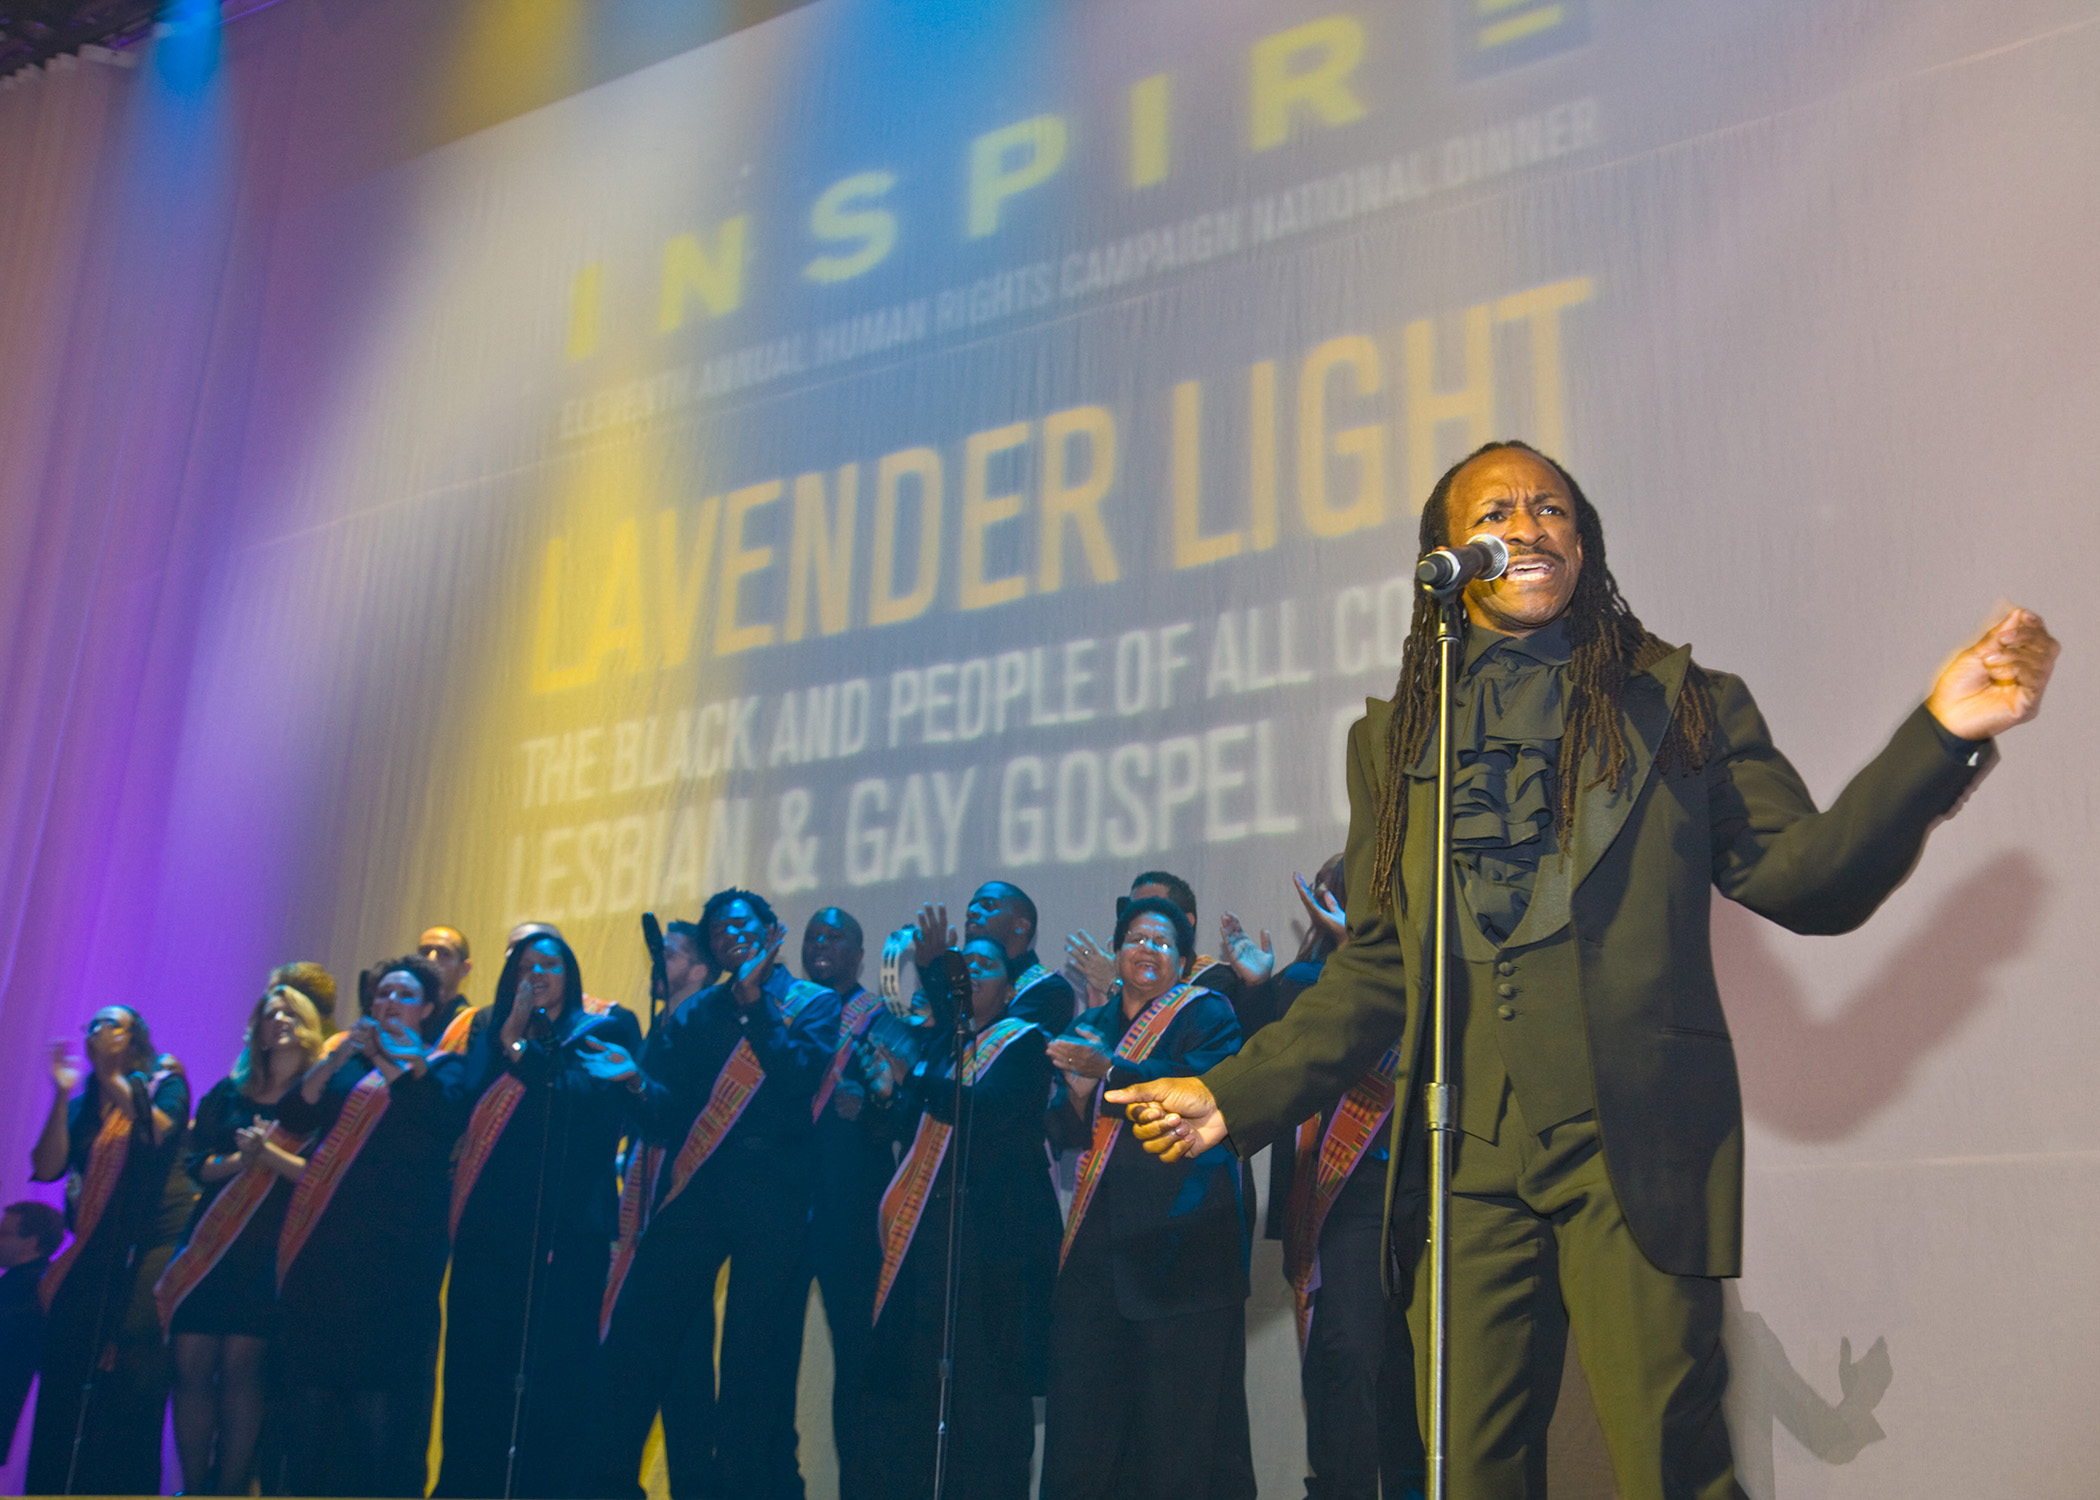 Lavender Light Gospel Choir Symphony Space Peter Jay Sharpe Theatre